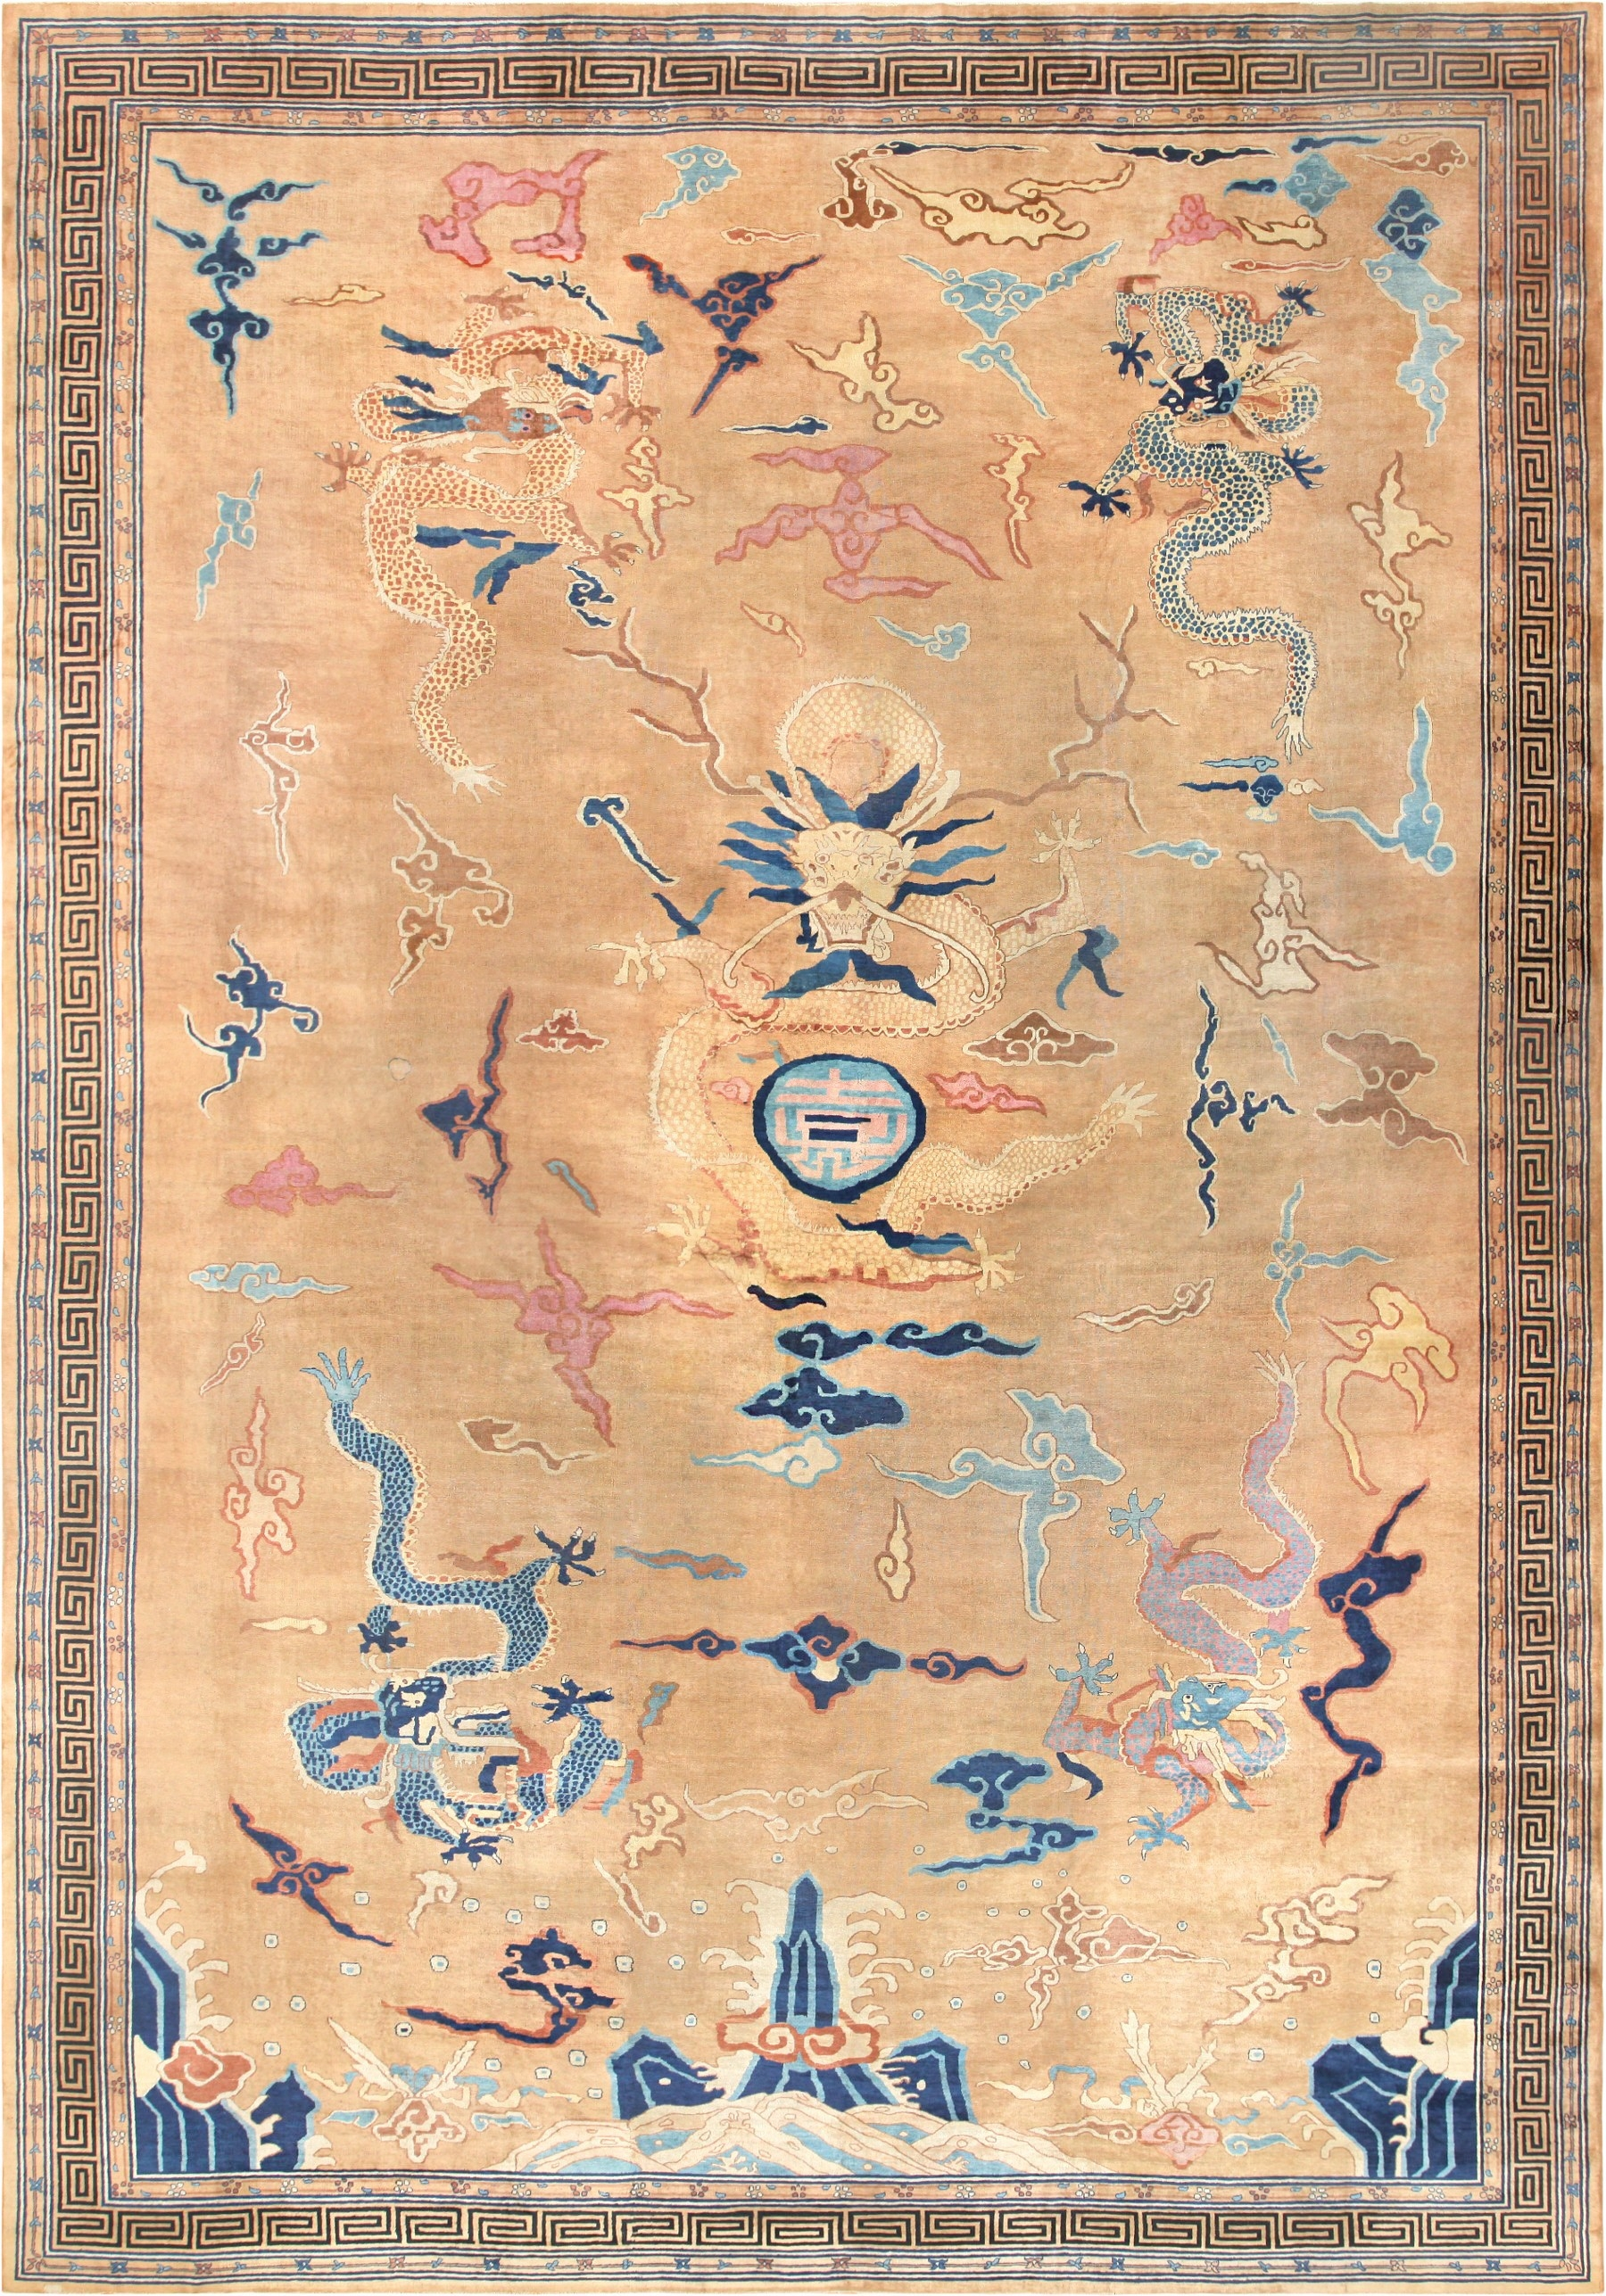 Chinese Art Deco Rug Art Deco Rug 46621 Nazmiyal Nyc With Chinese Rugs (Image 9 of 15)